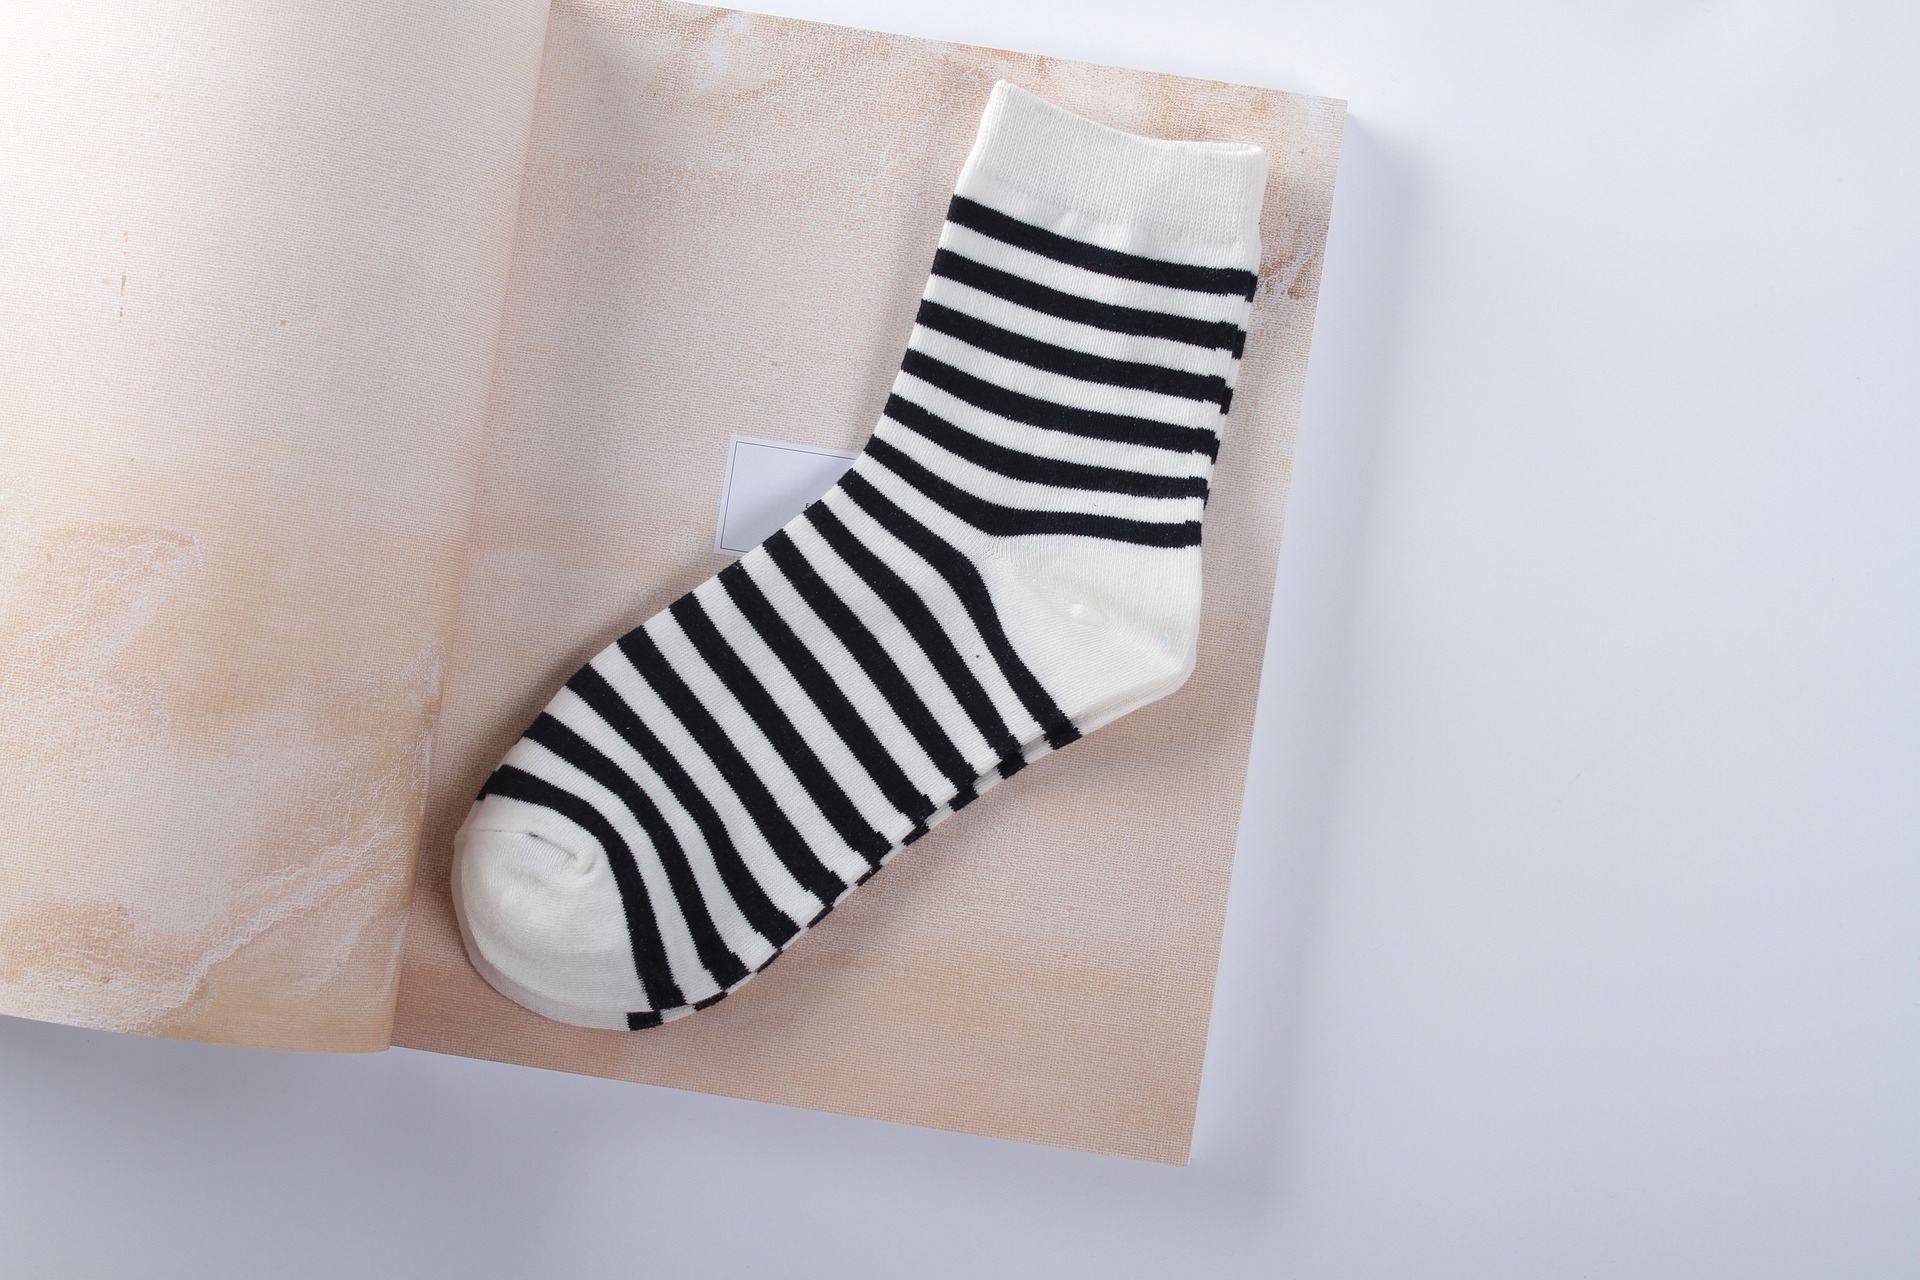 Mistake 11: Tossing Socks in Willy-Nilly